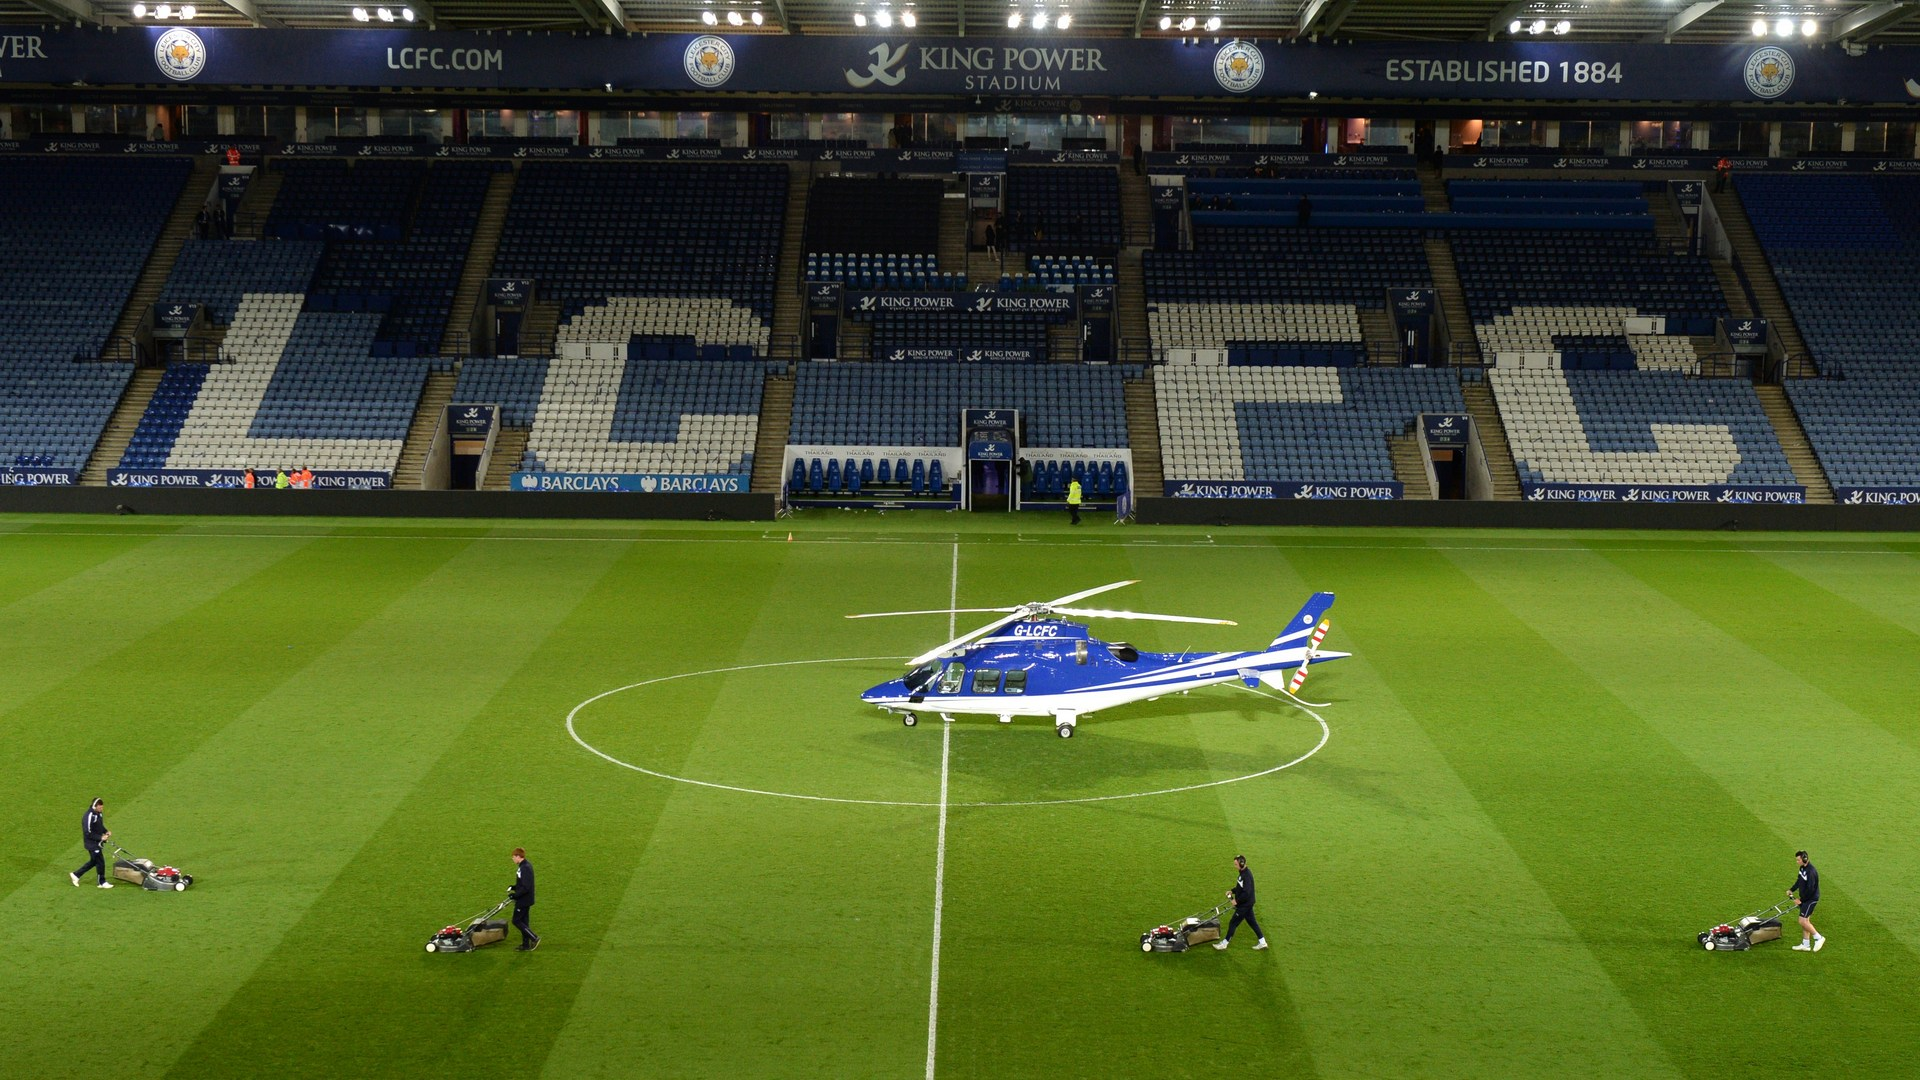 Leicester City's Owner's Helicopter Crashes At Stadium